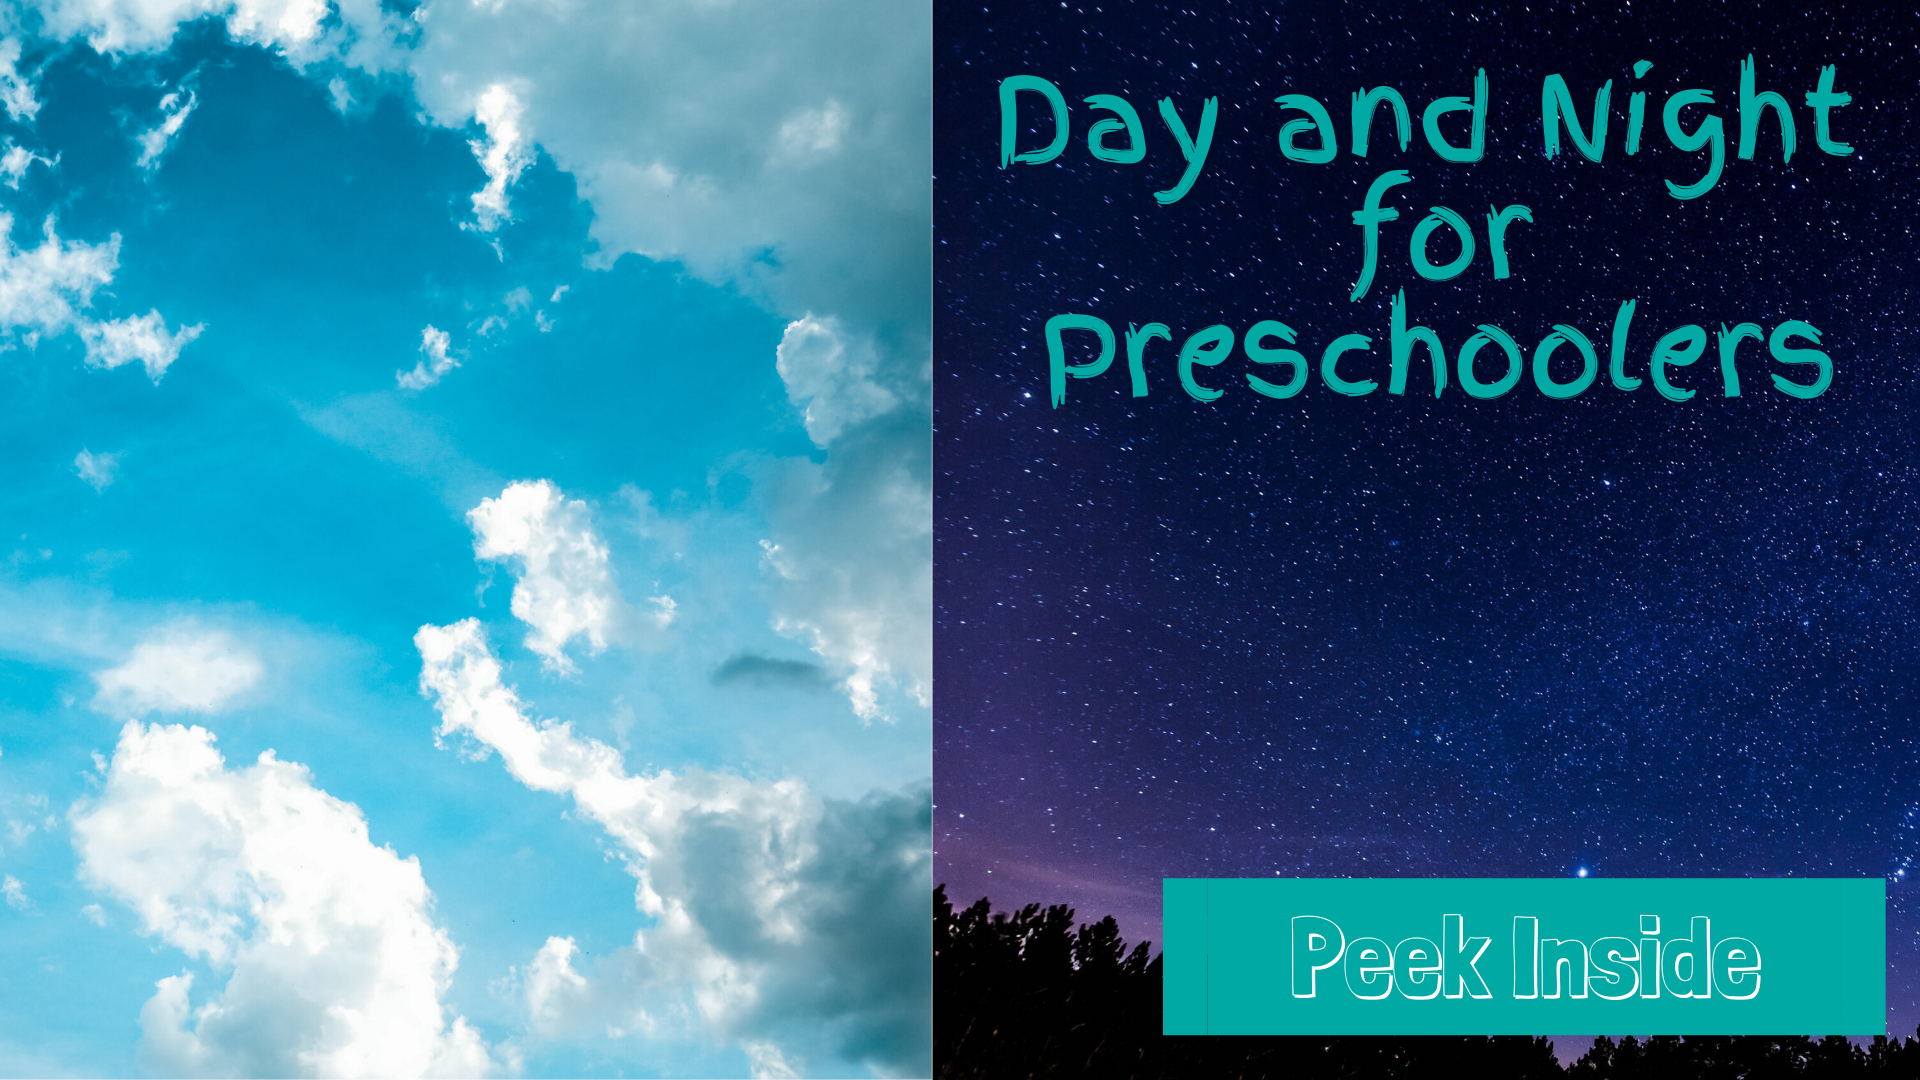 Day and Night for preschoolers